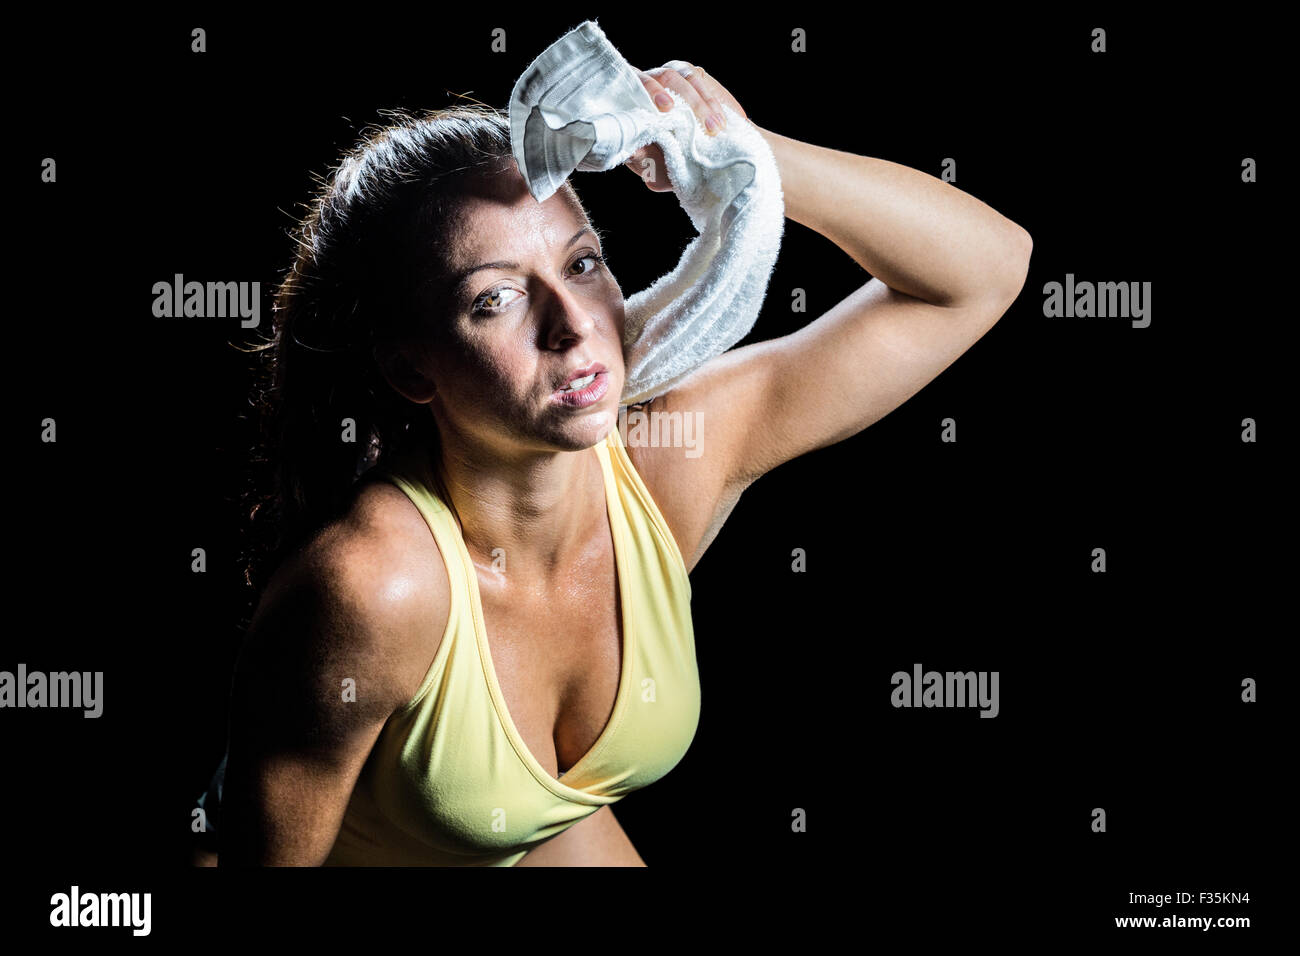 Portrait of athlete wiping sweat with towel - Stock Image